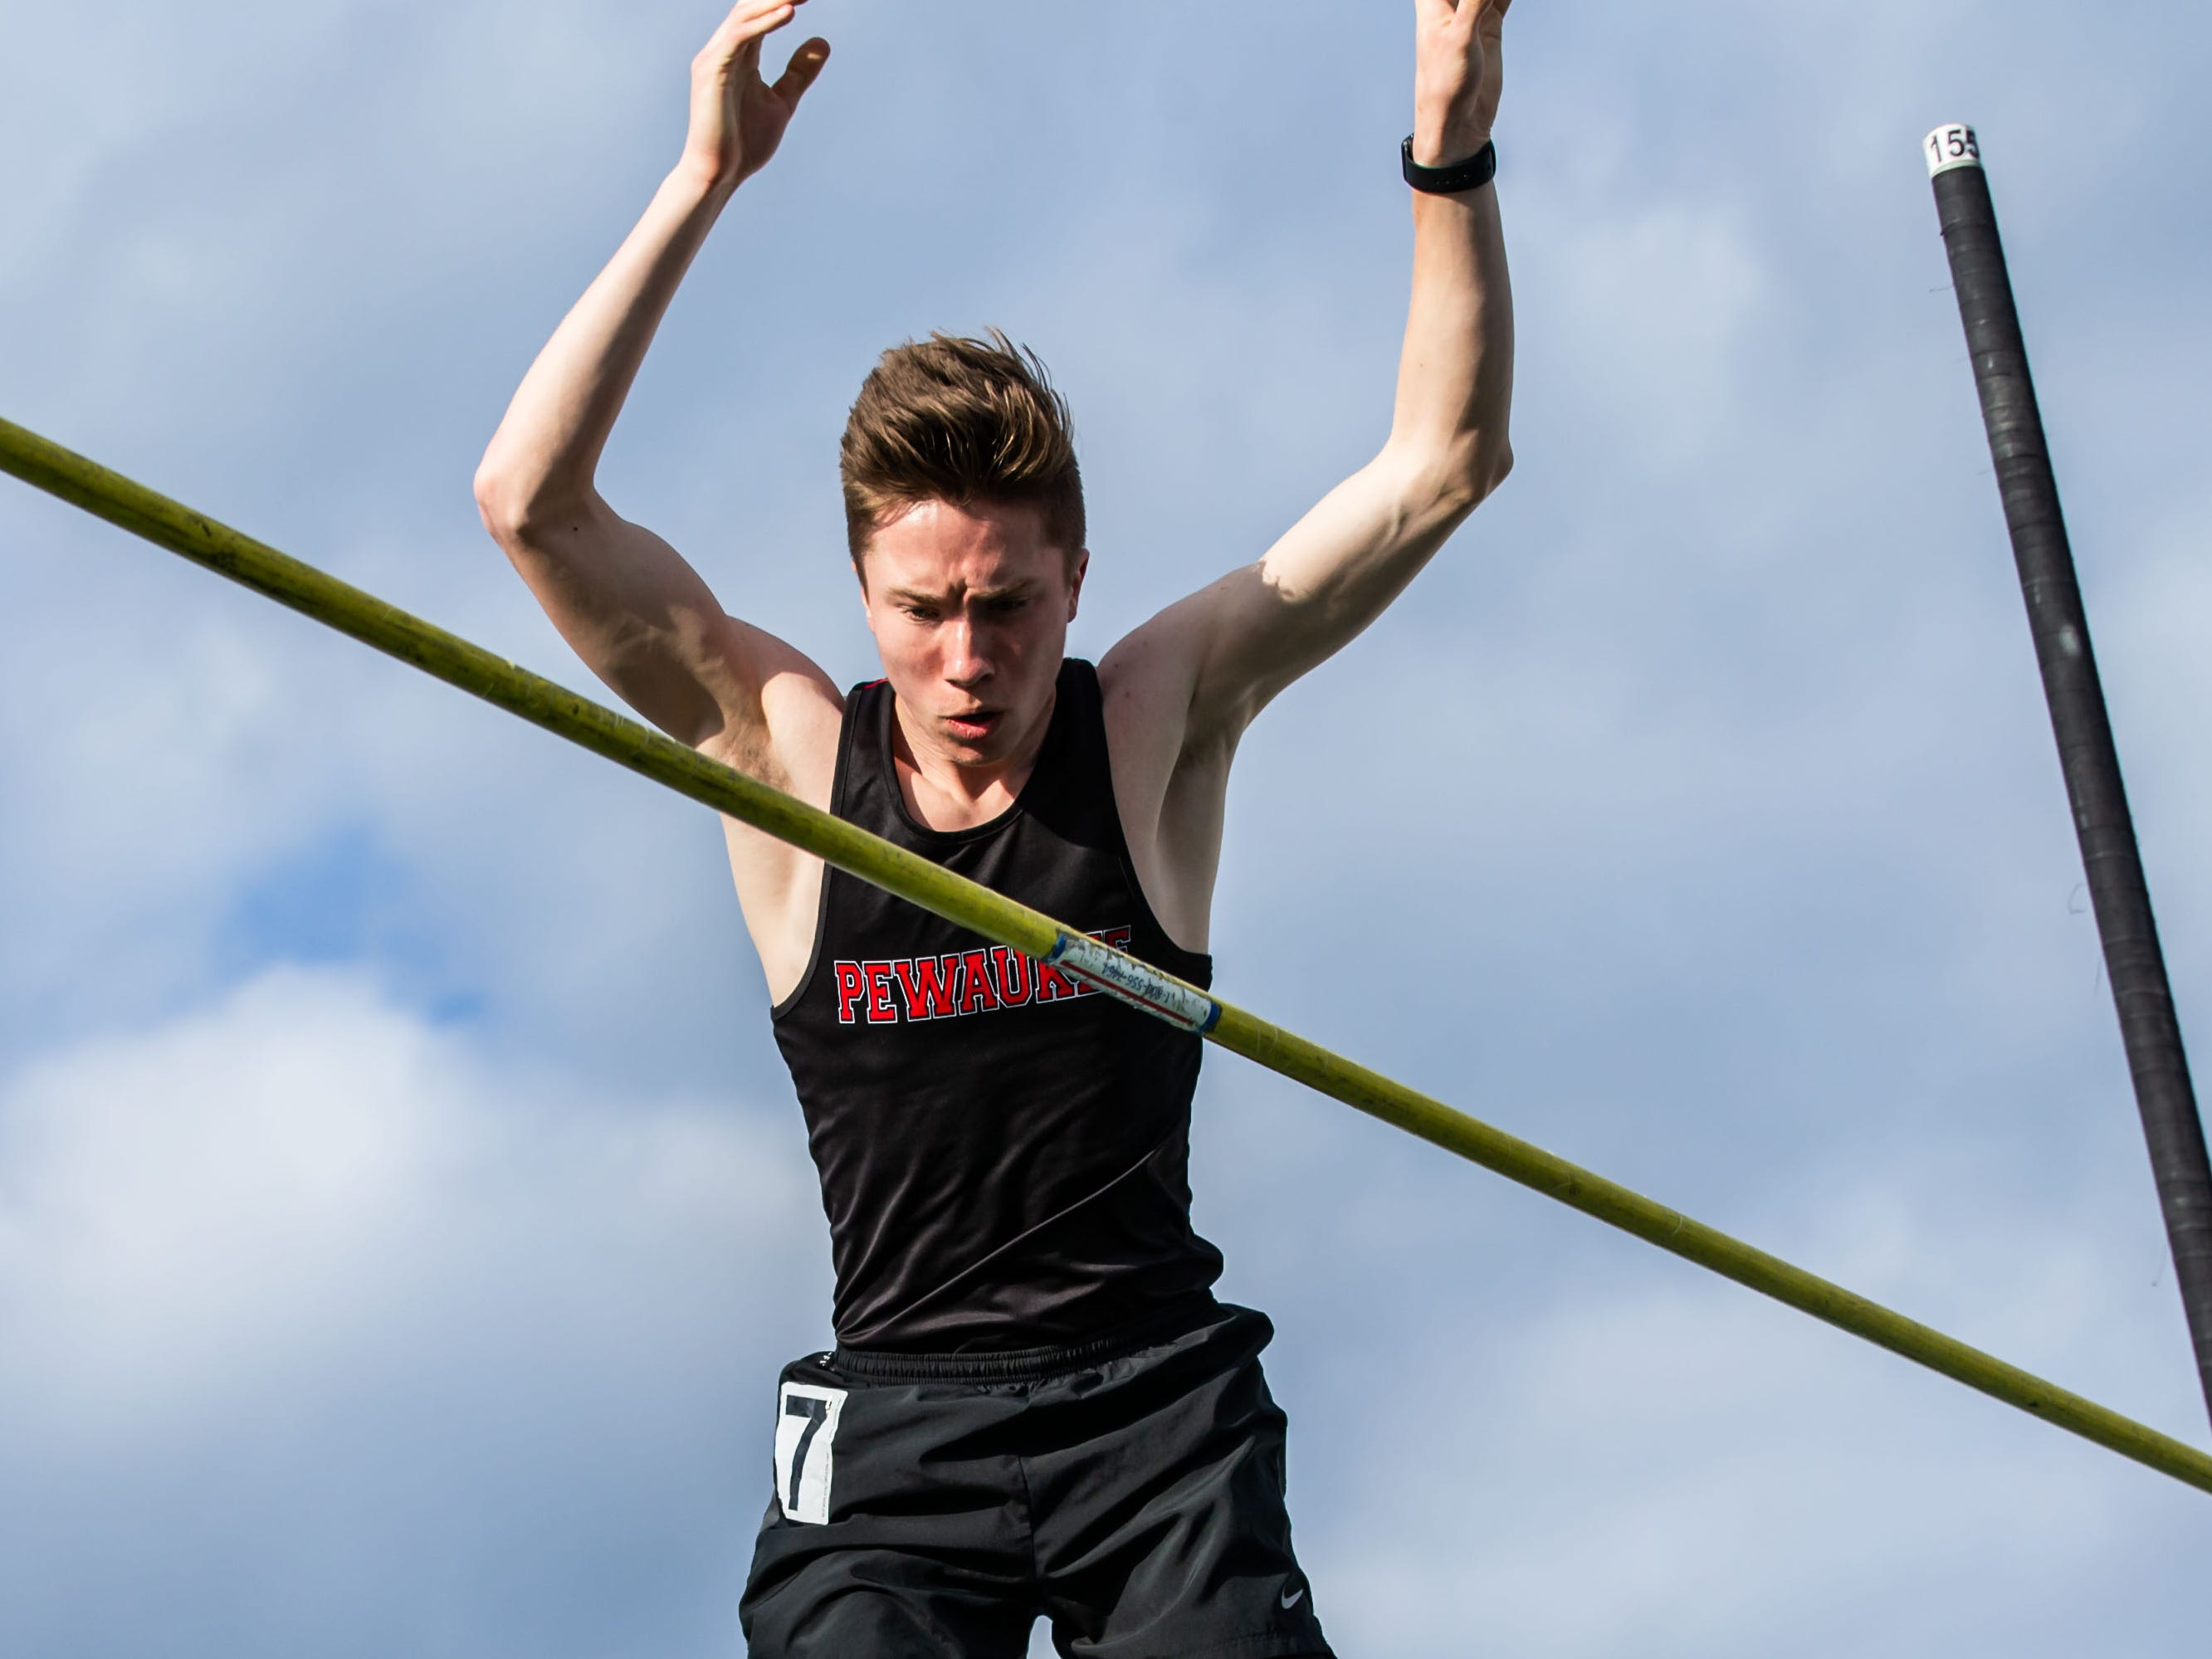 Pewaukee's Joey Thomas places second in the pole vault at the Woodland Conference Track and Field Championships in West Allis on Tuesday, May 14, 2019.